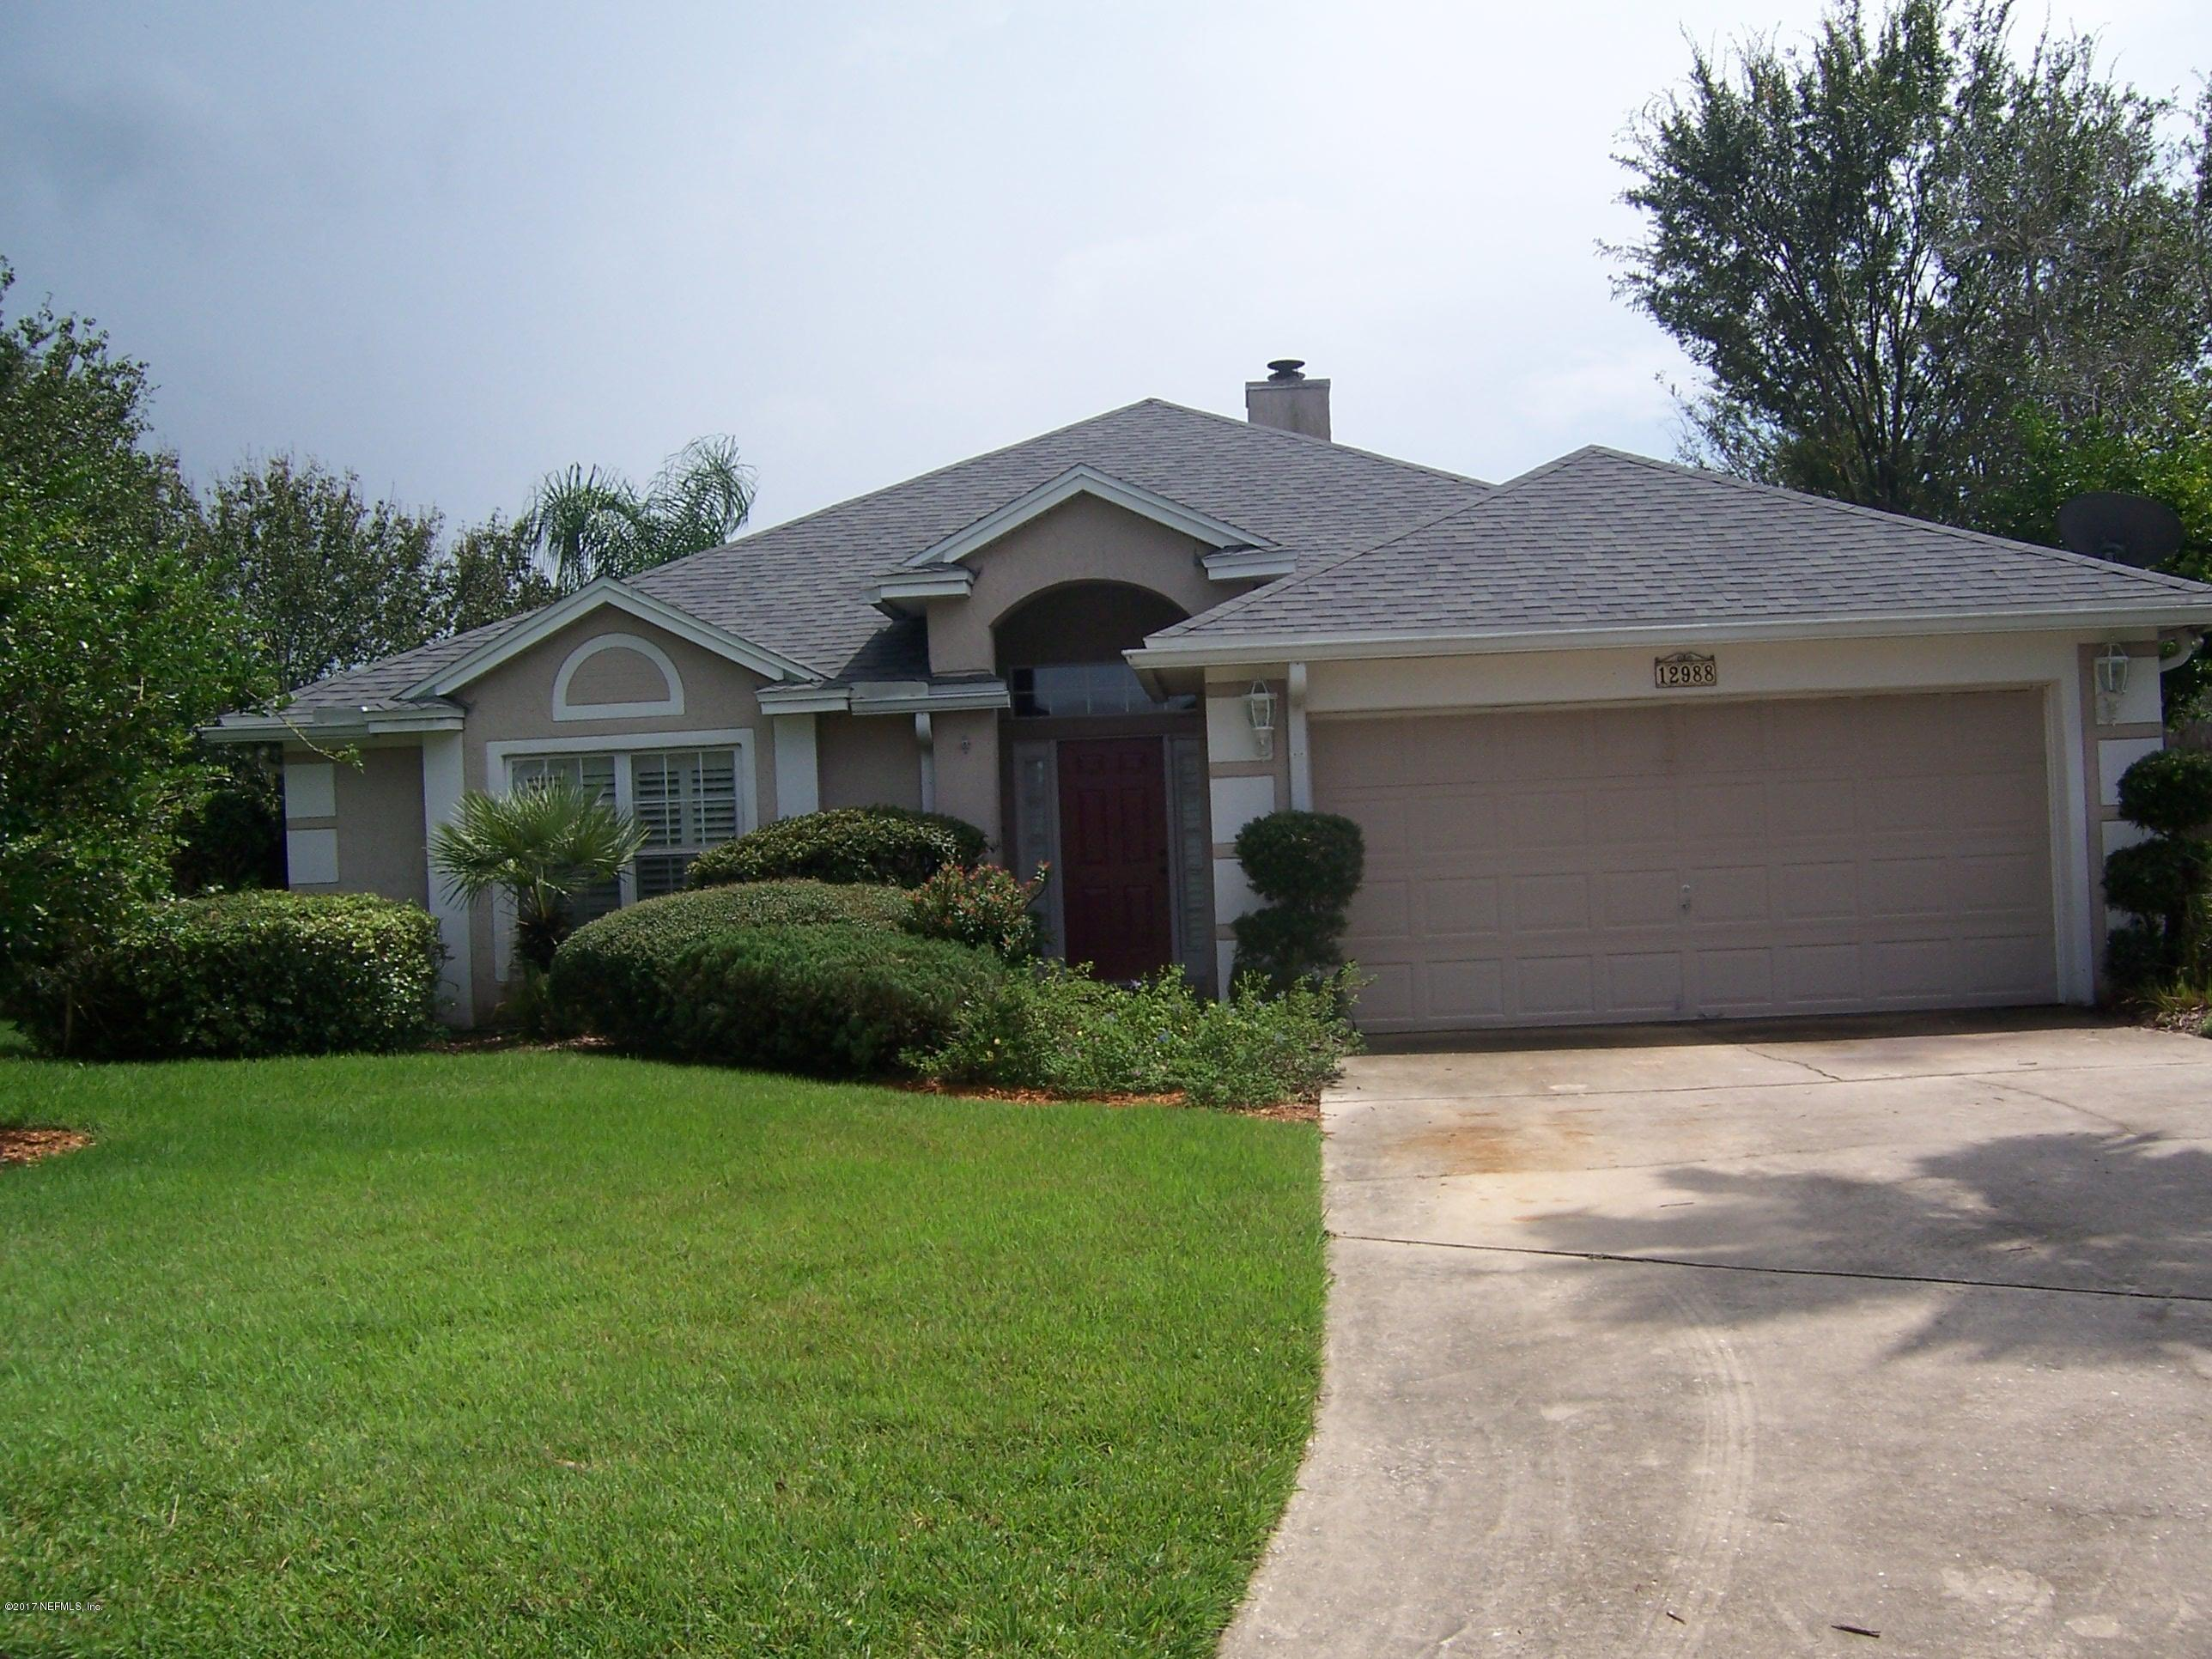 12988 WINTHROP COVE, JACKSONVILLE, FLORIDA 32224, 3 Bedrooms Bedrooms, ,2 BathroomsBathrooms,Residential - single family,For sale,WINTHROP COVE,897559